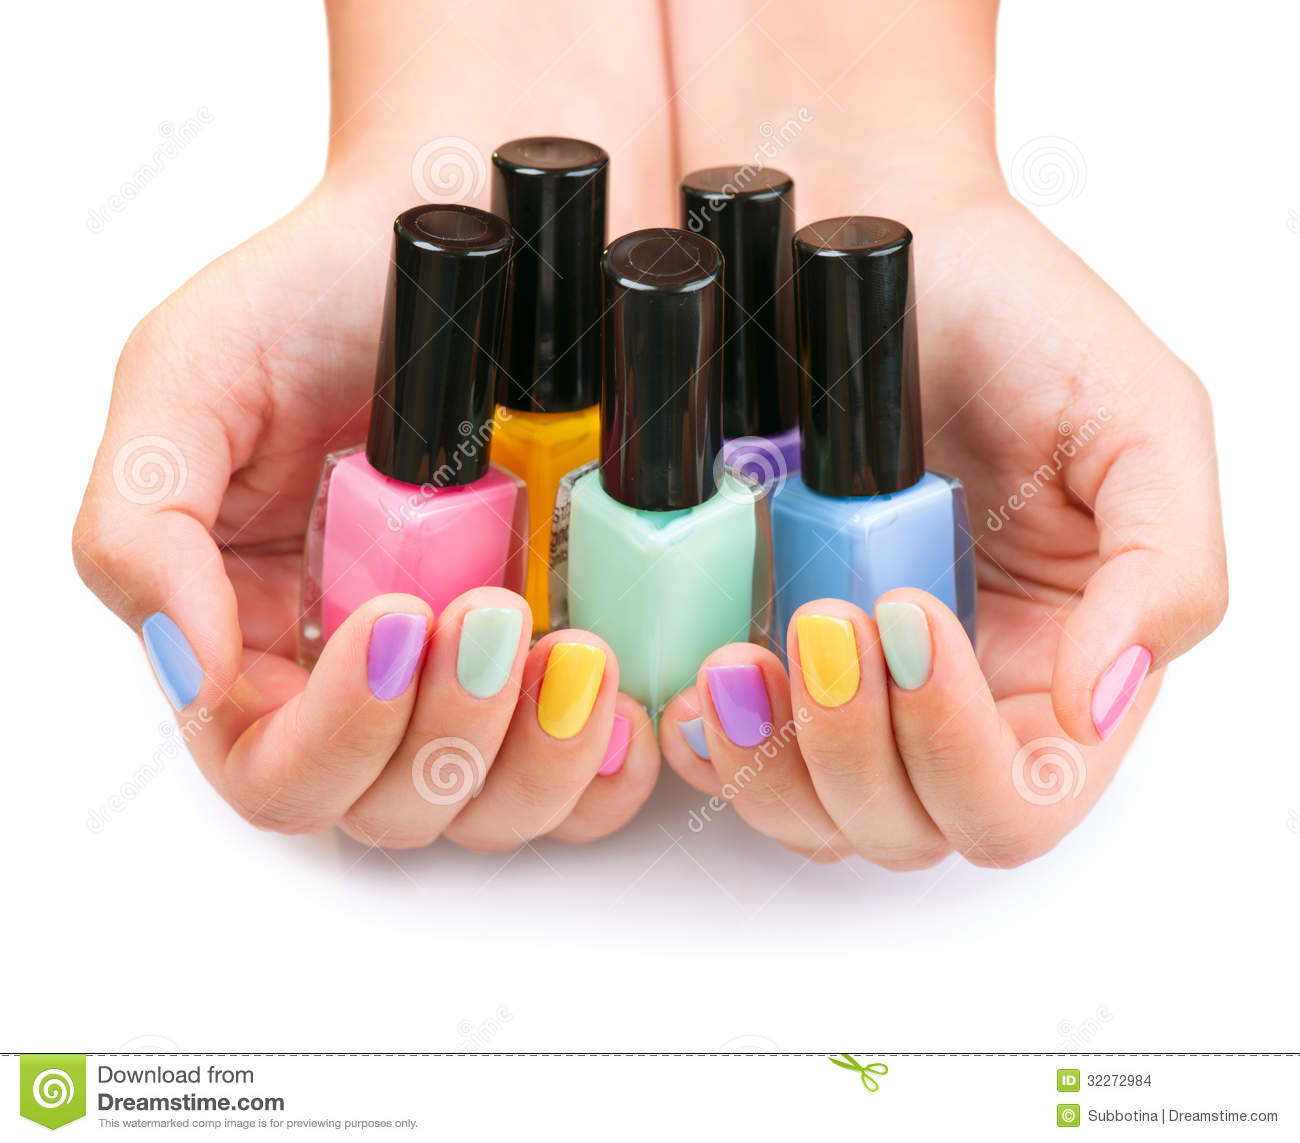 Sally Beauty offers salon professional gel nail polish, soak off gel nail polish, and gel nail polish kits from brands like China Glaze, Essie, Gelish, and more. Shop now.